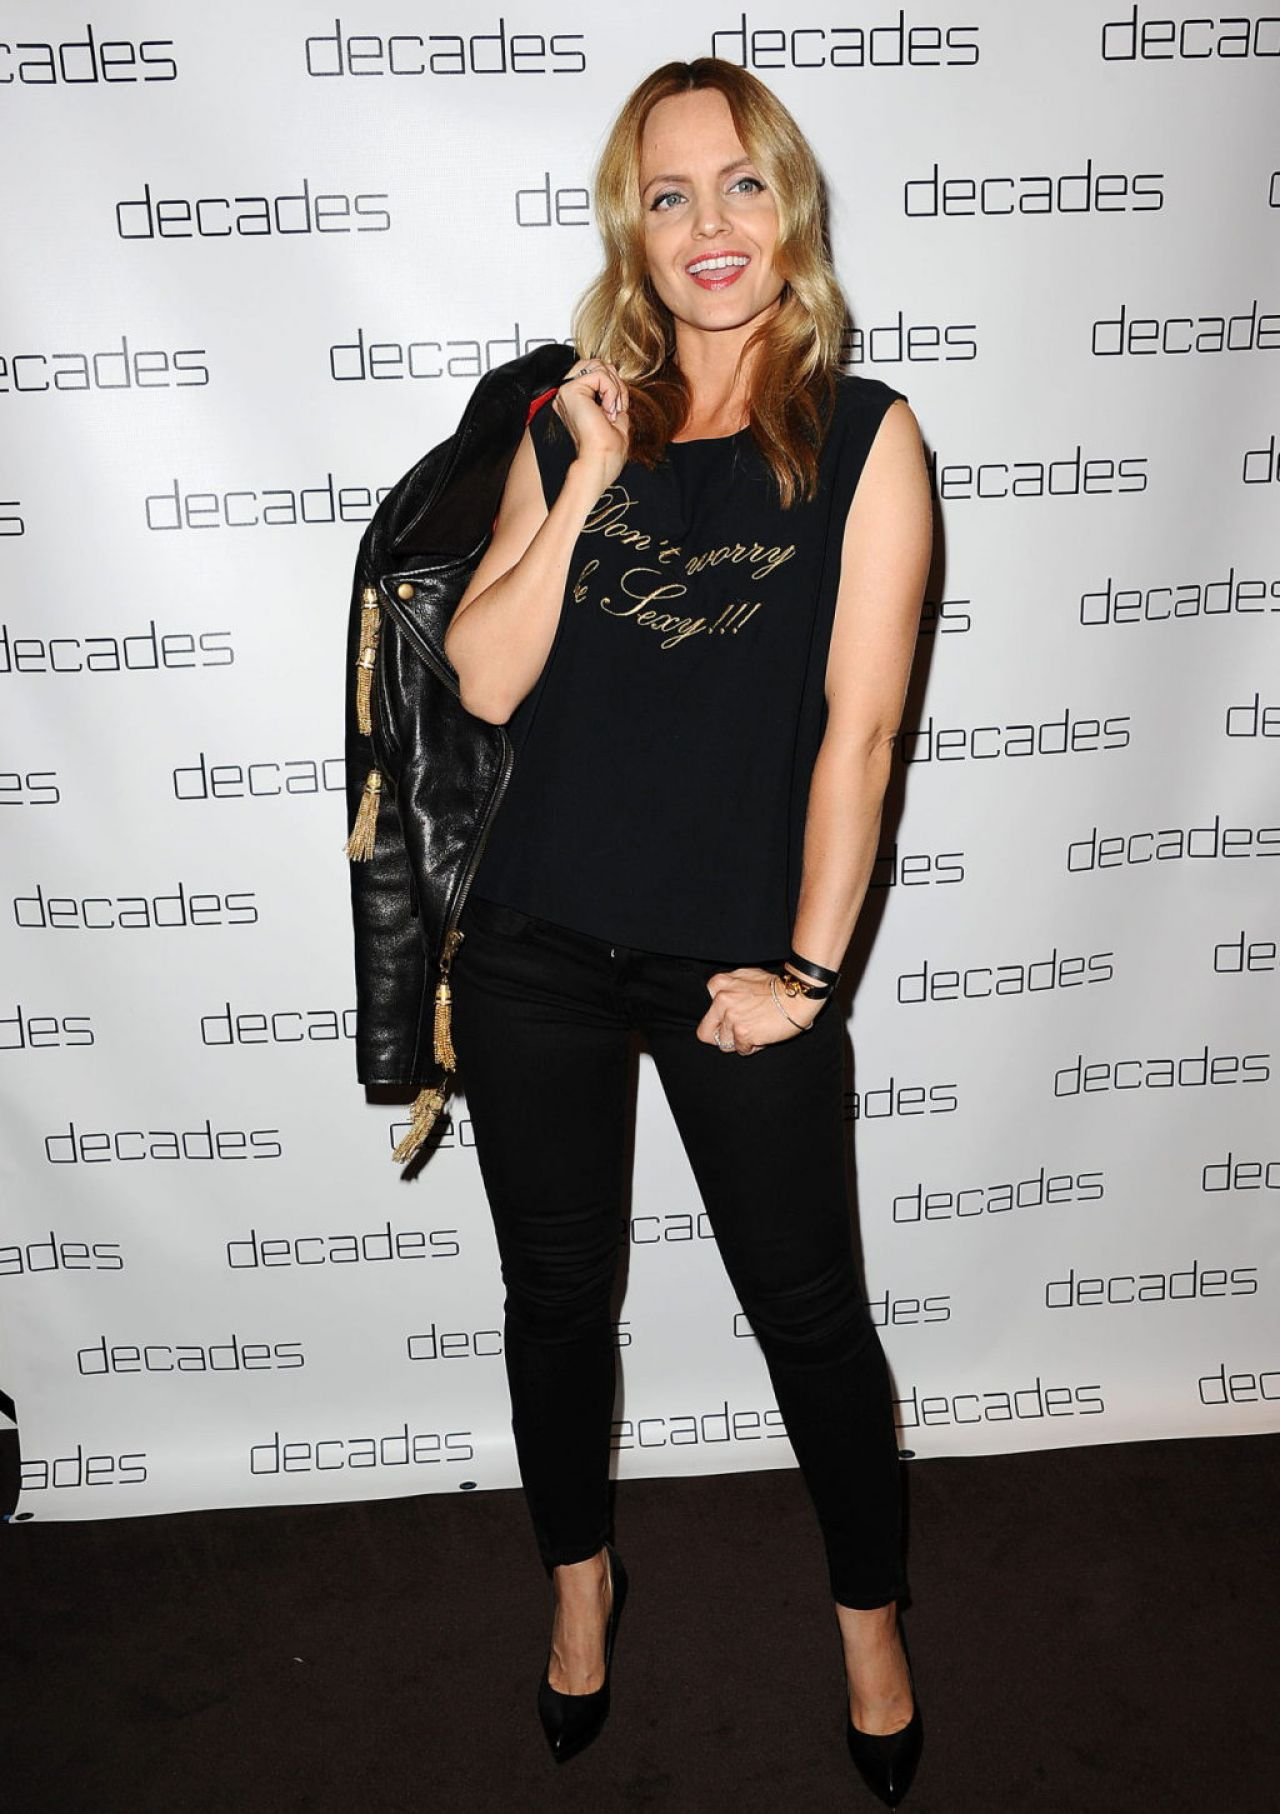 Mena Suvari at Decades Les Must De Moschino Event, March 2014